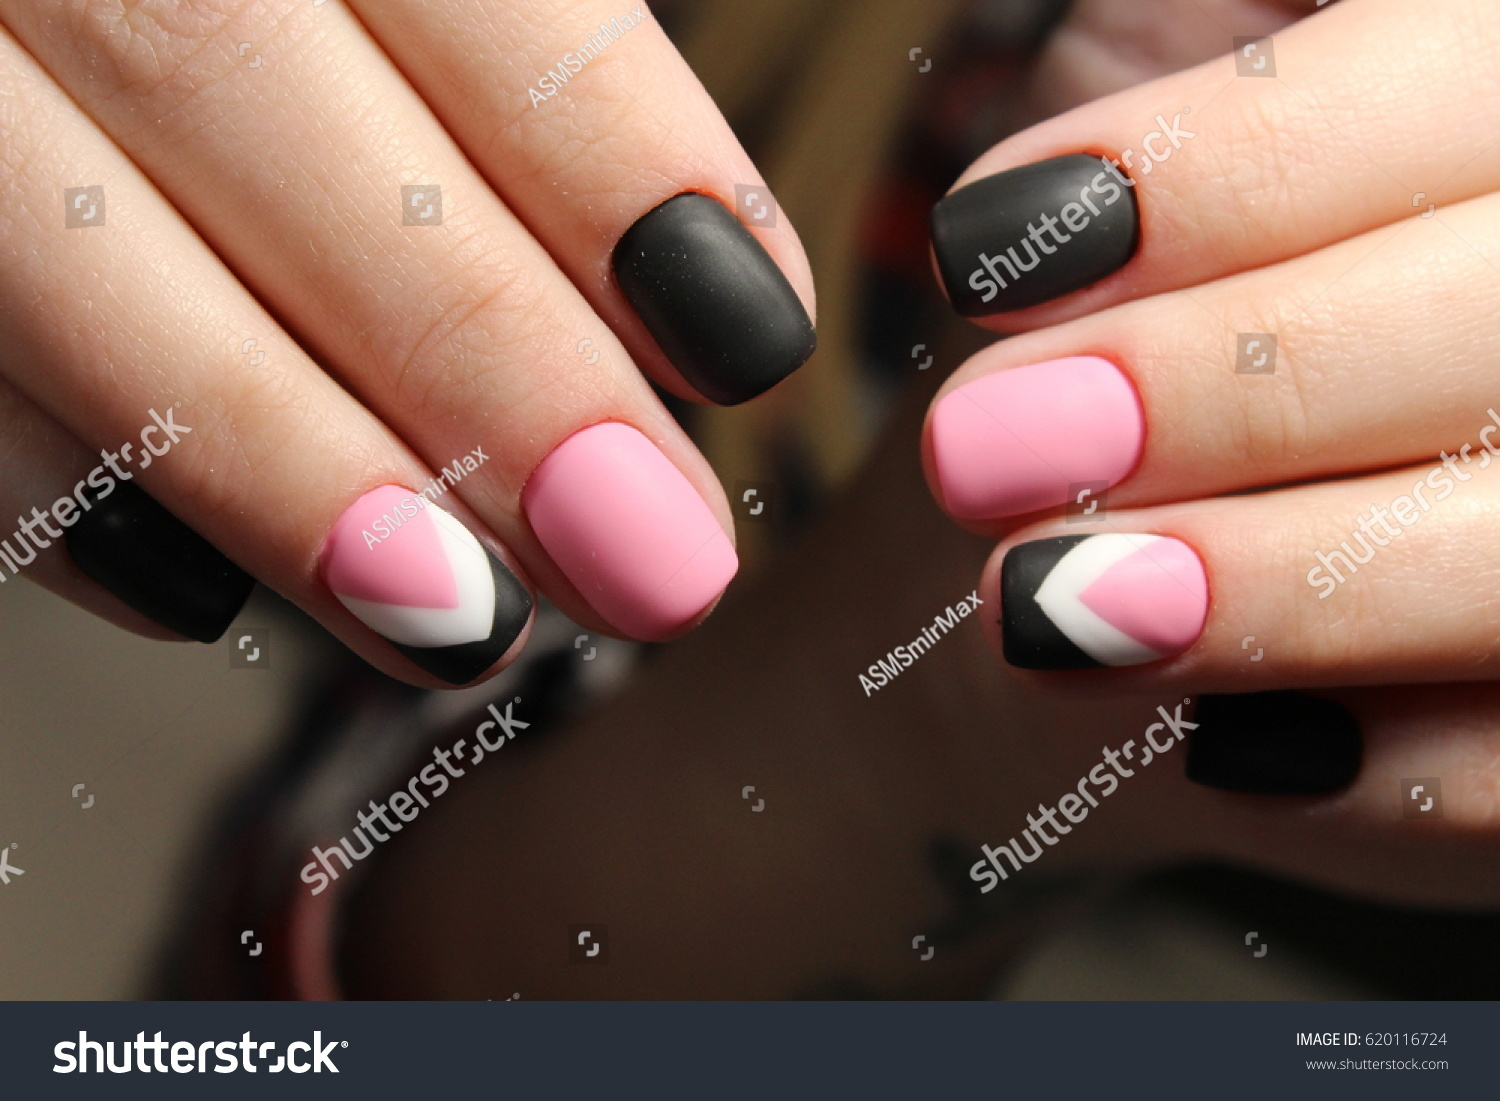 Manicure Design Matte Black Pink Nails Stock Photo & Image (Royalty ...